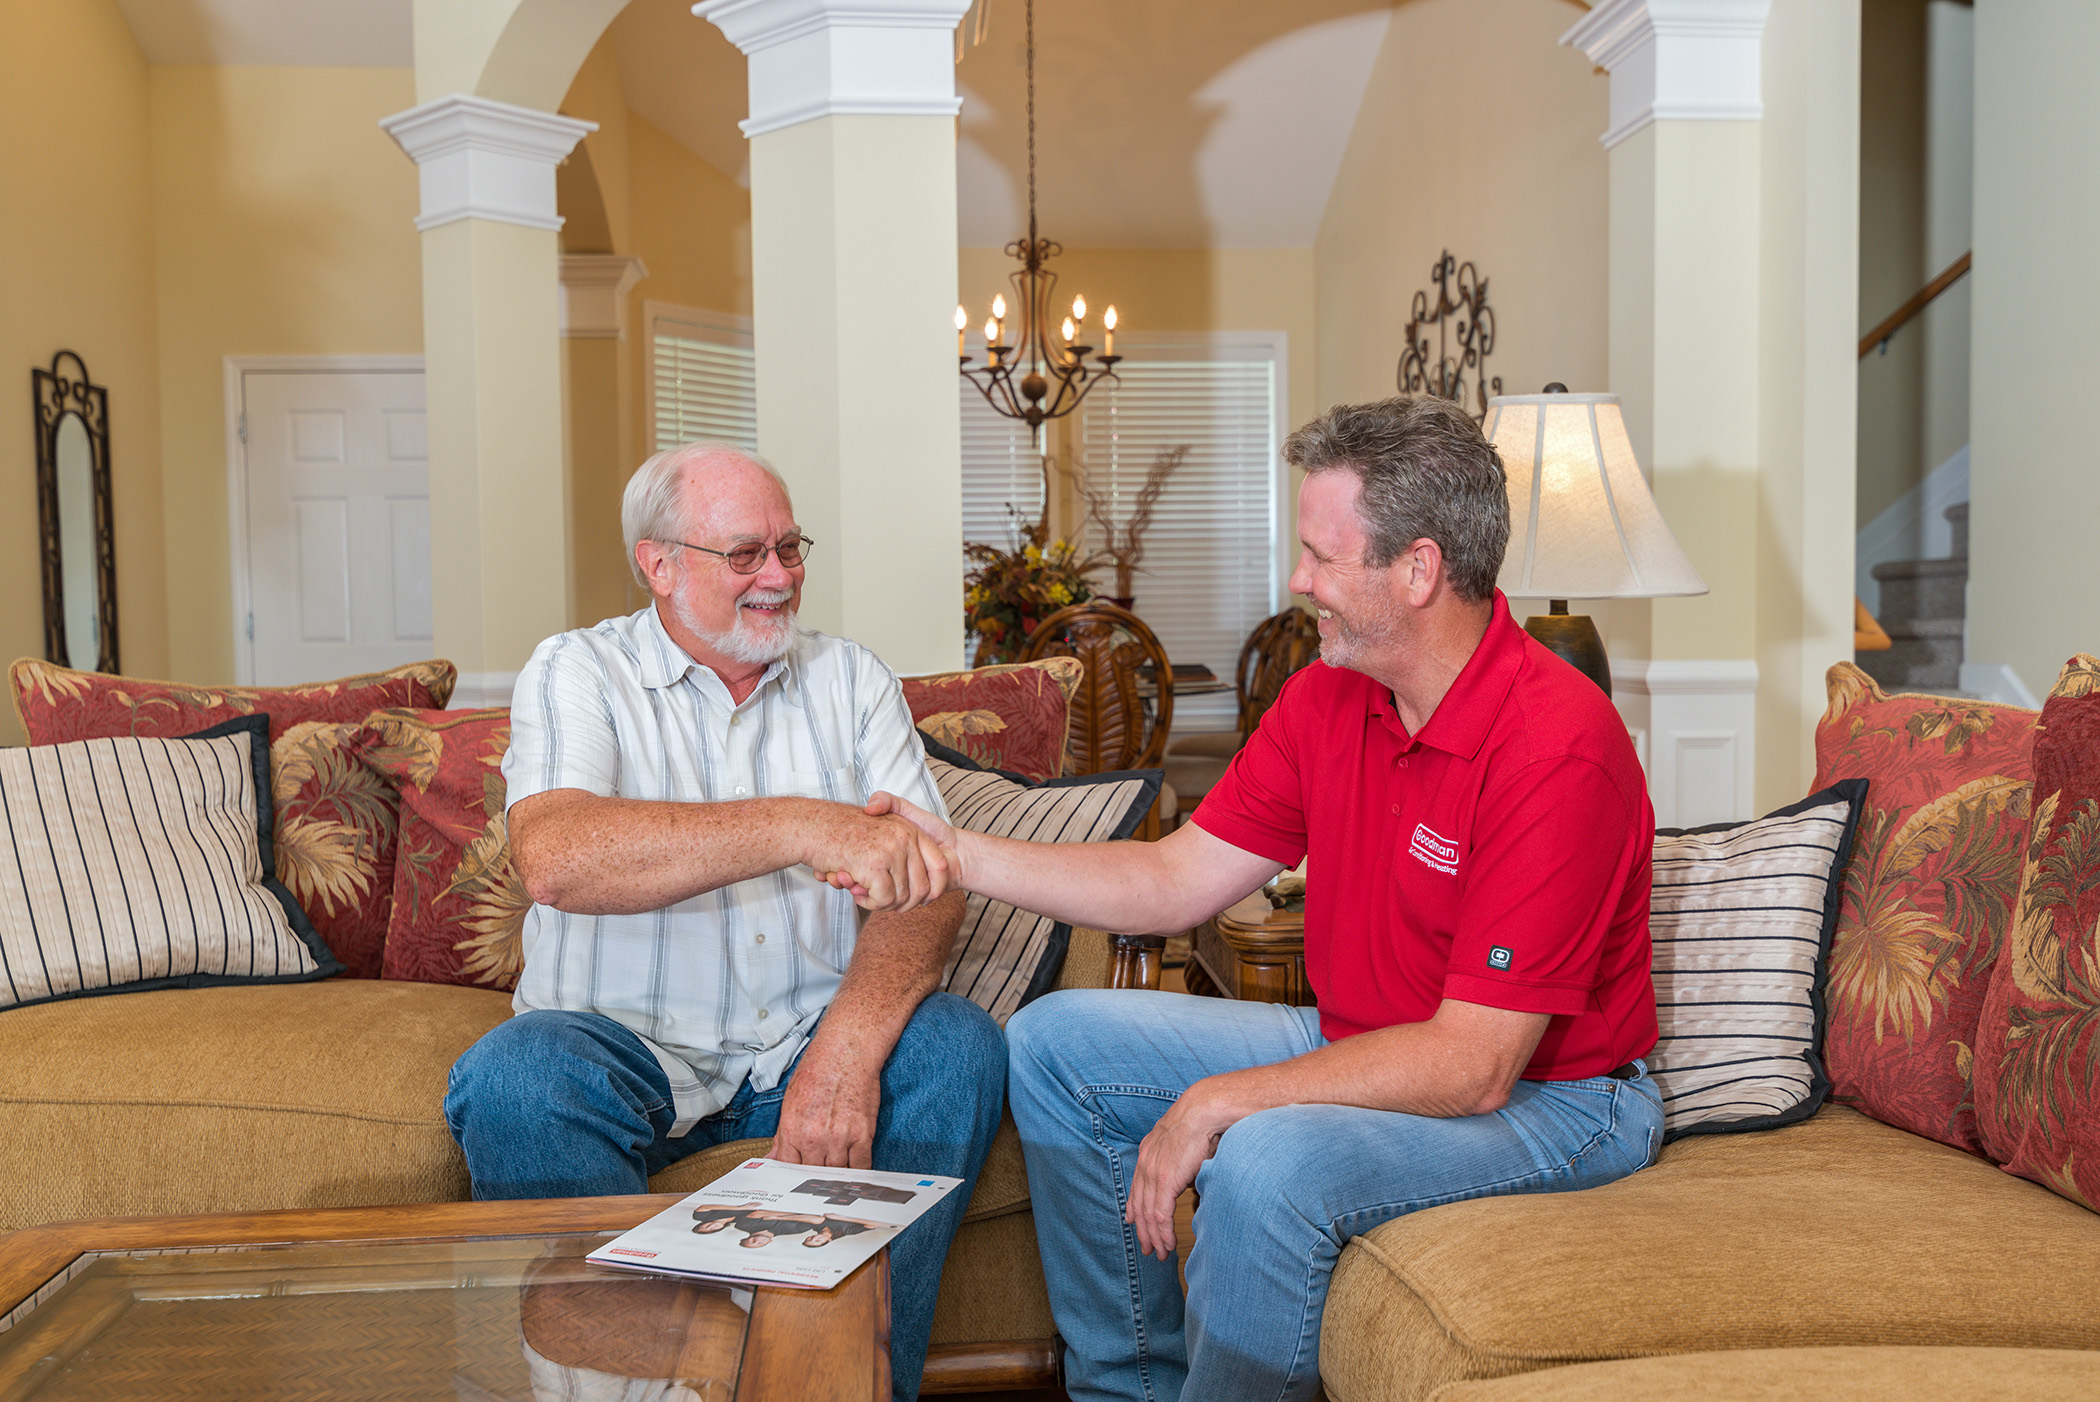 Goodman HVAC dealer discussing options with homeowner